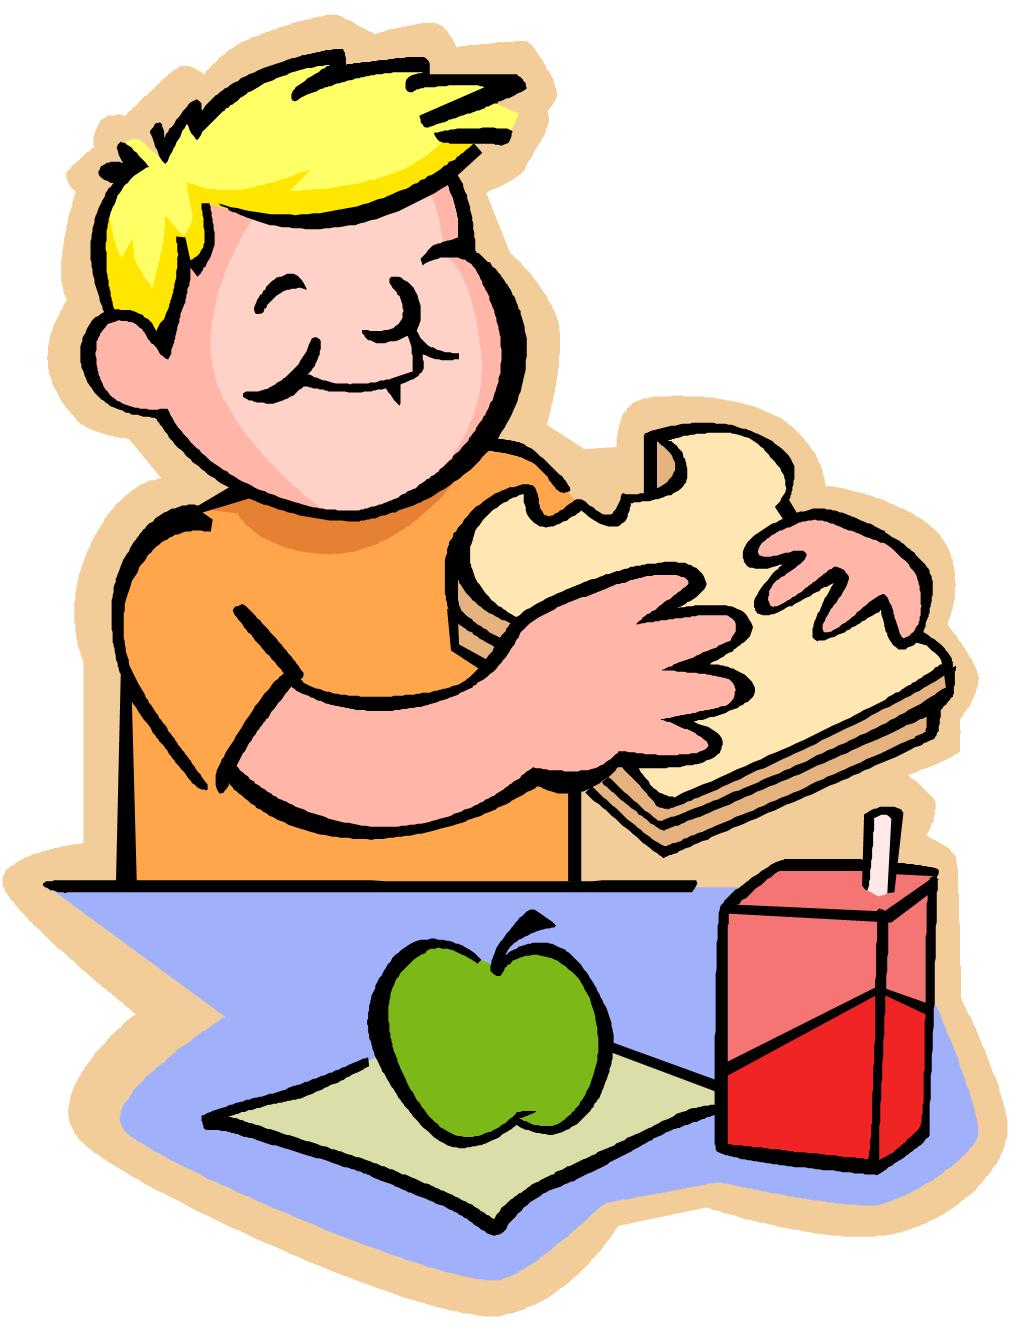 Kids Eating At Table Panda Free Images clipart free image.